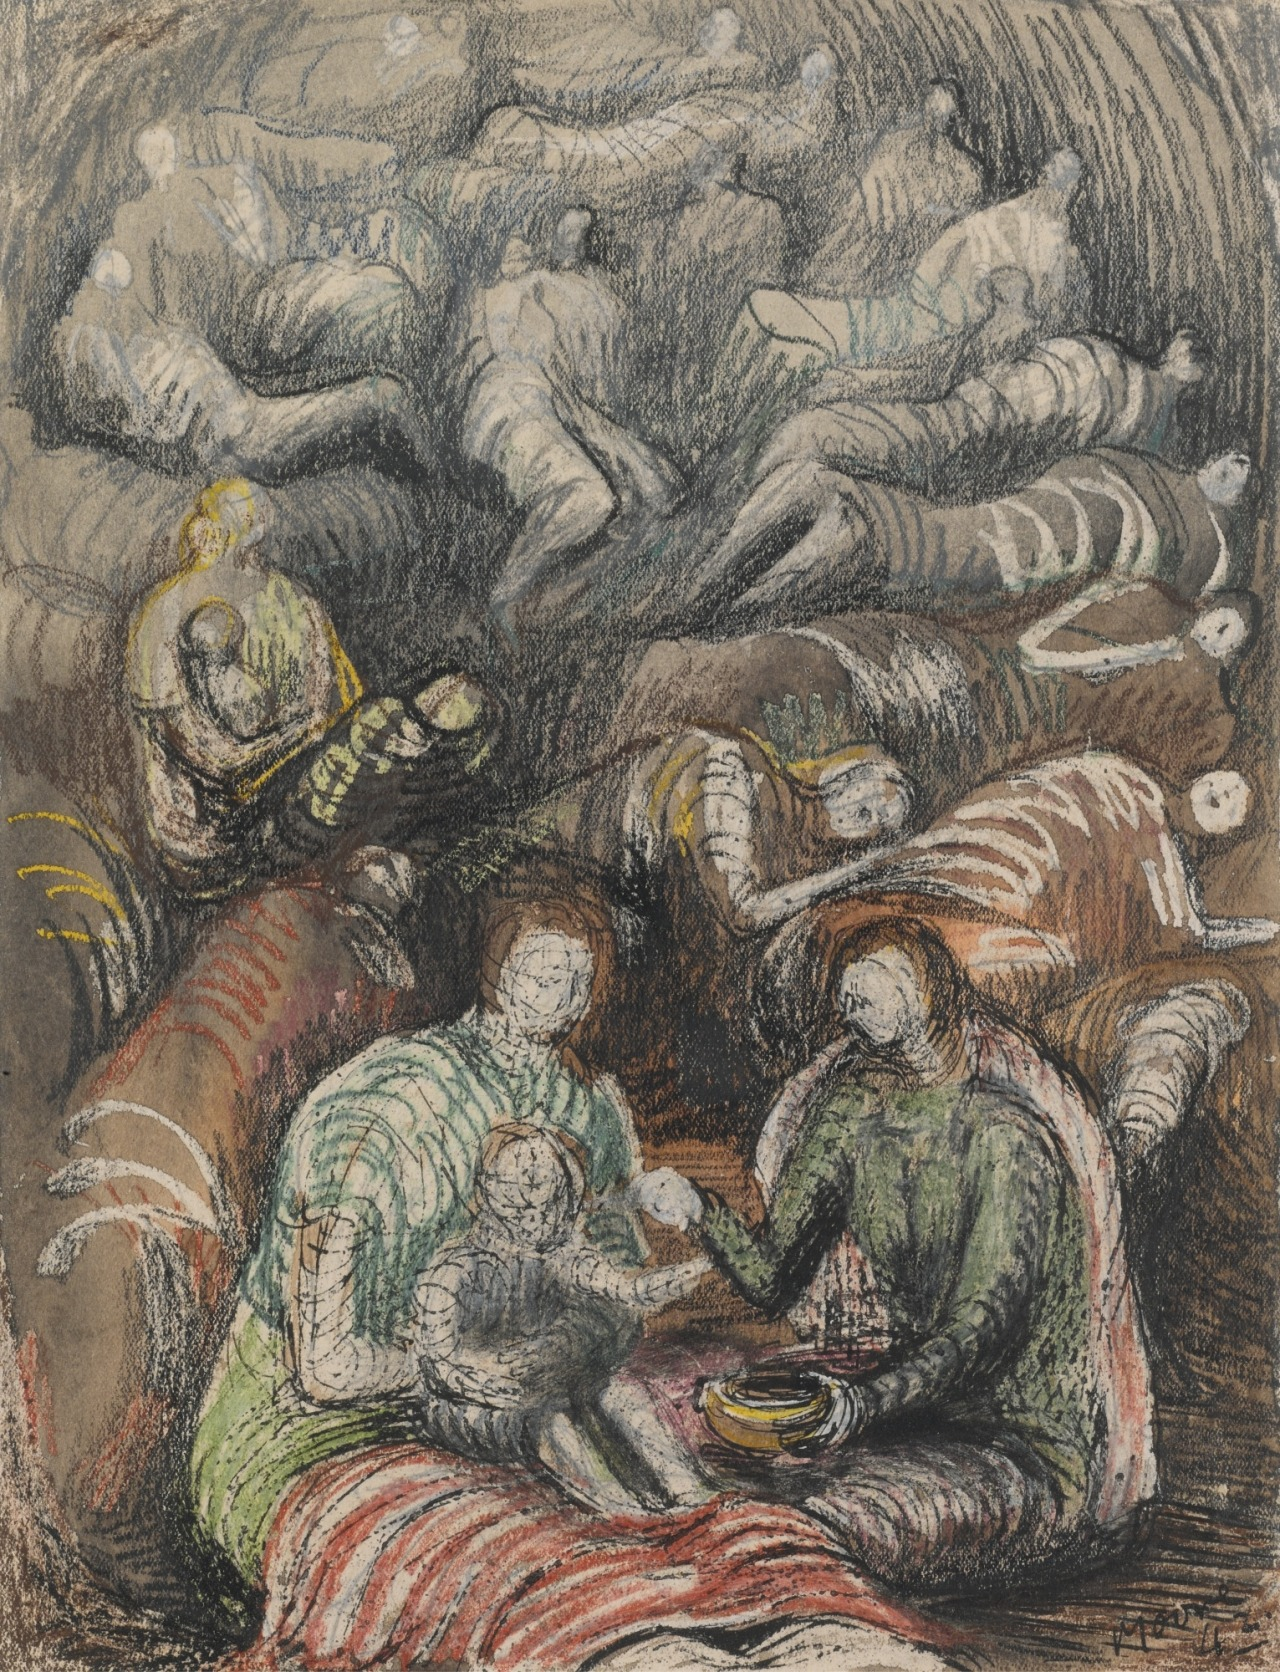 """thunderstruck9: """" Henry Moore (British, 1898-1986), Shelter Drawing, 1942. Pencil, watercolour, wax crayon, pen and ink on paper, 28 x 21.5 cm. """""""